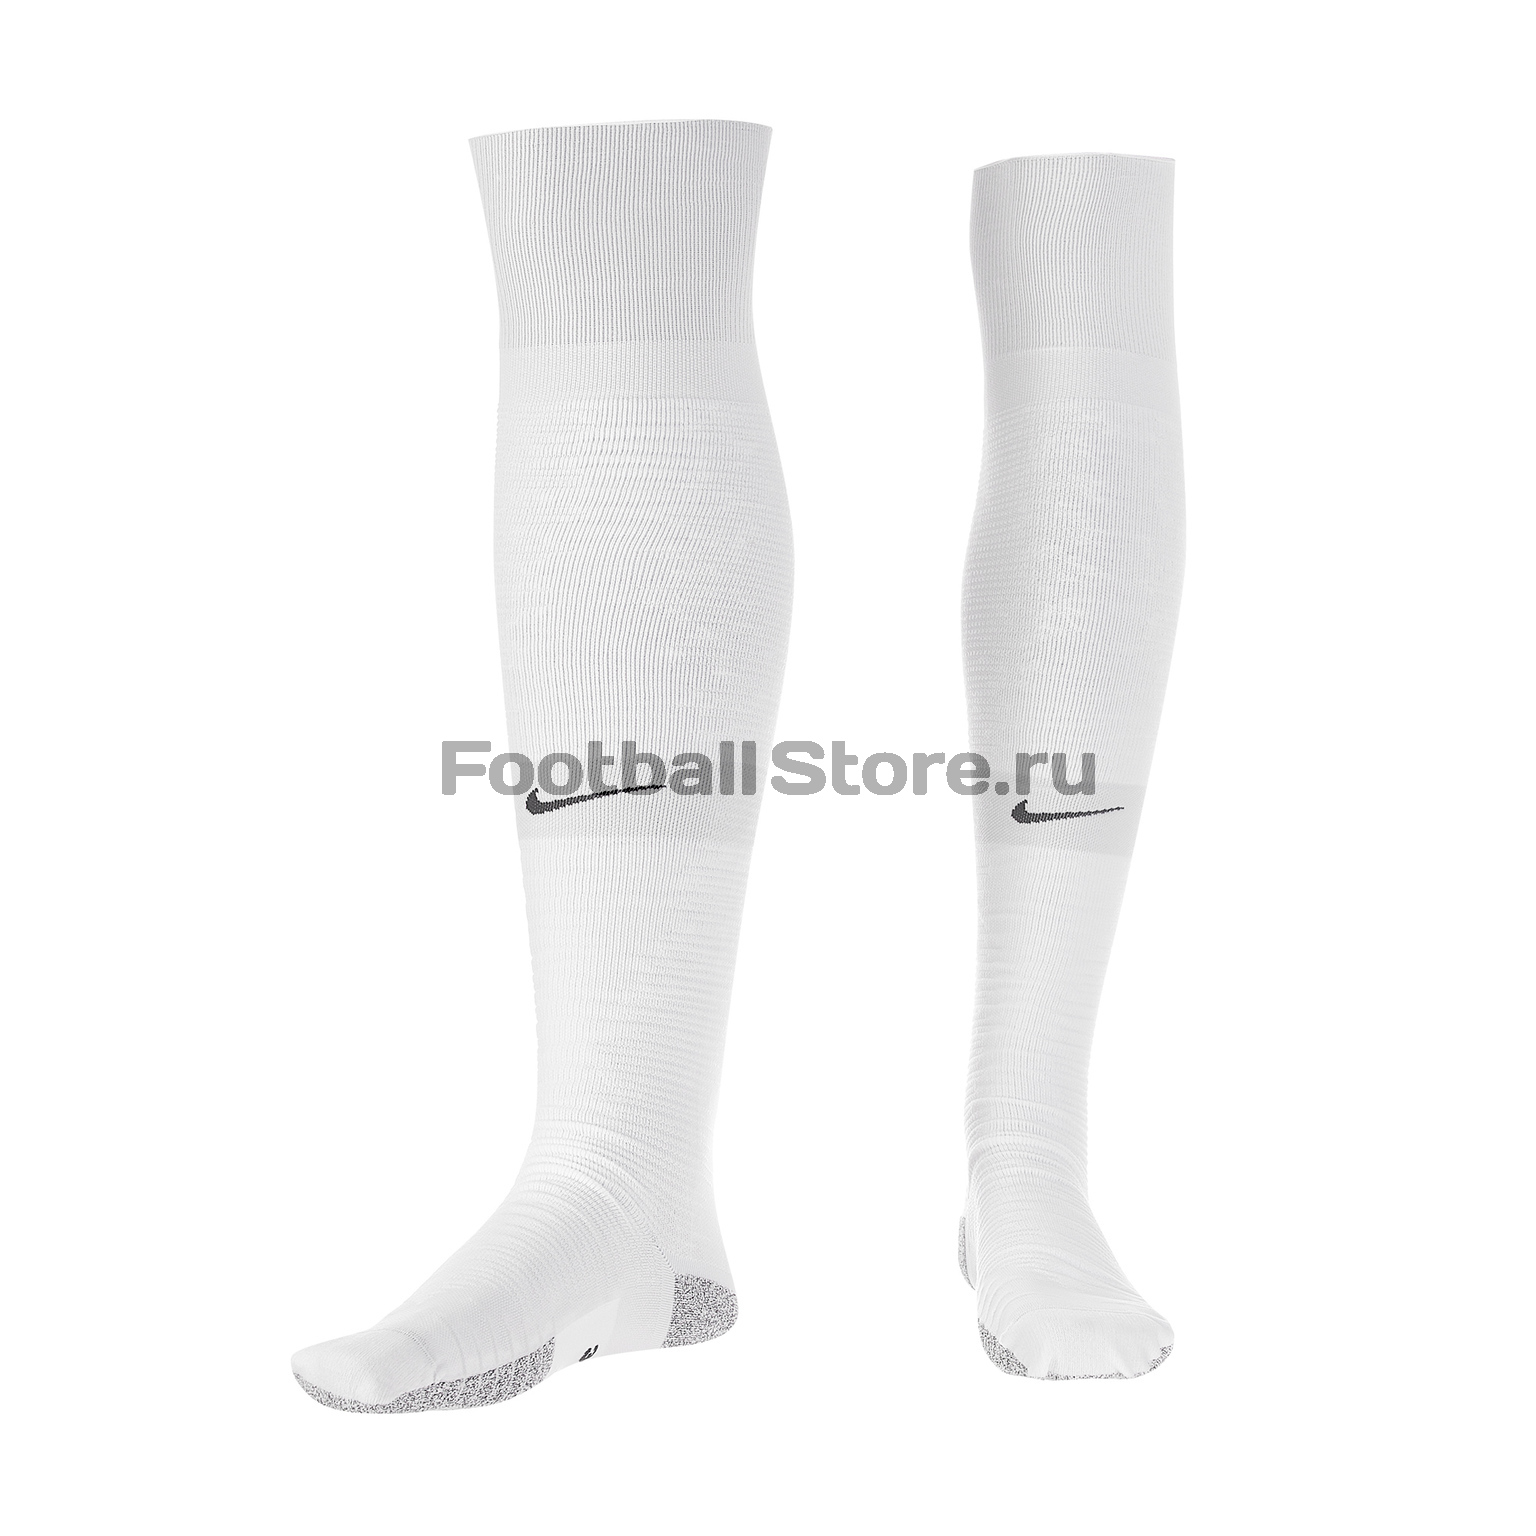 Гетры Nike Strike Light OTC-WC SX6938-100 гетры nike pds team stadium otc